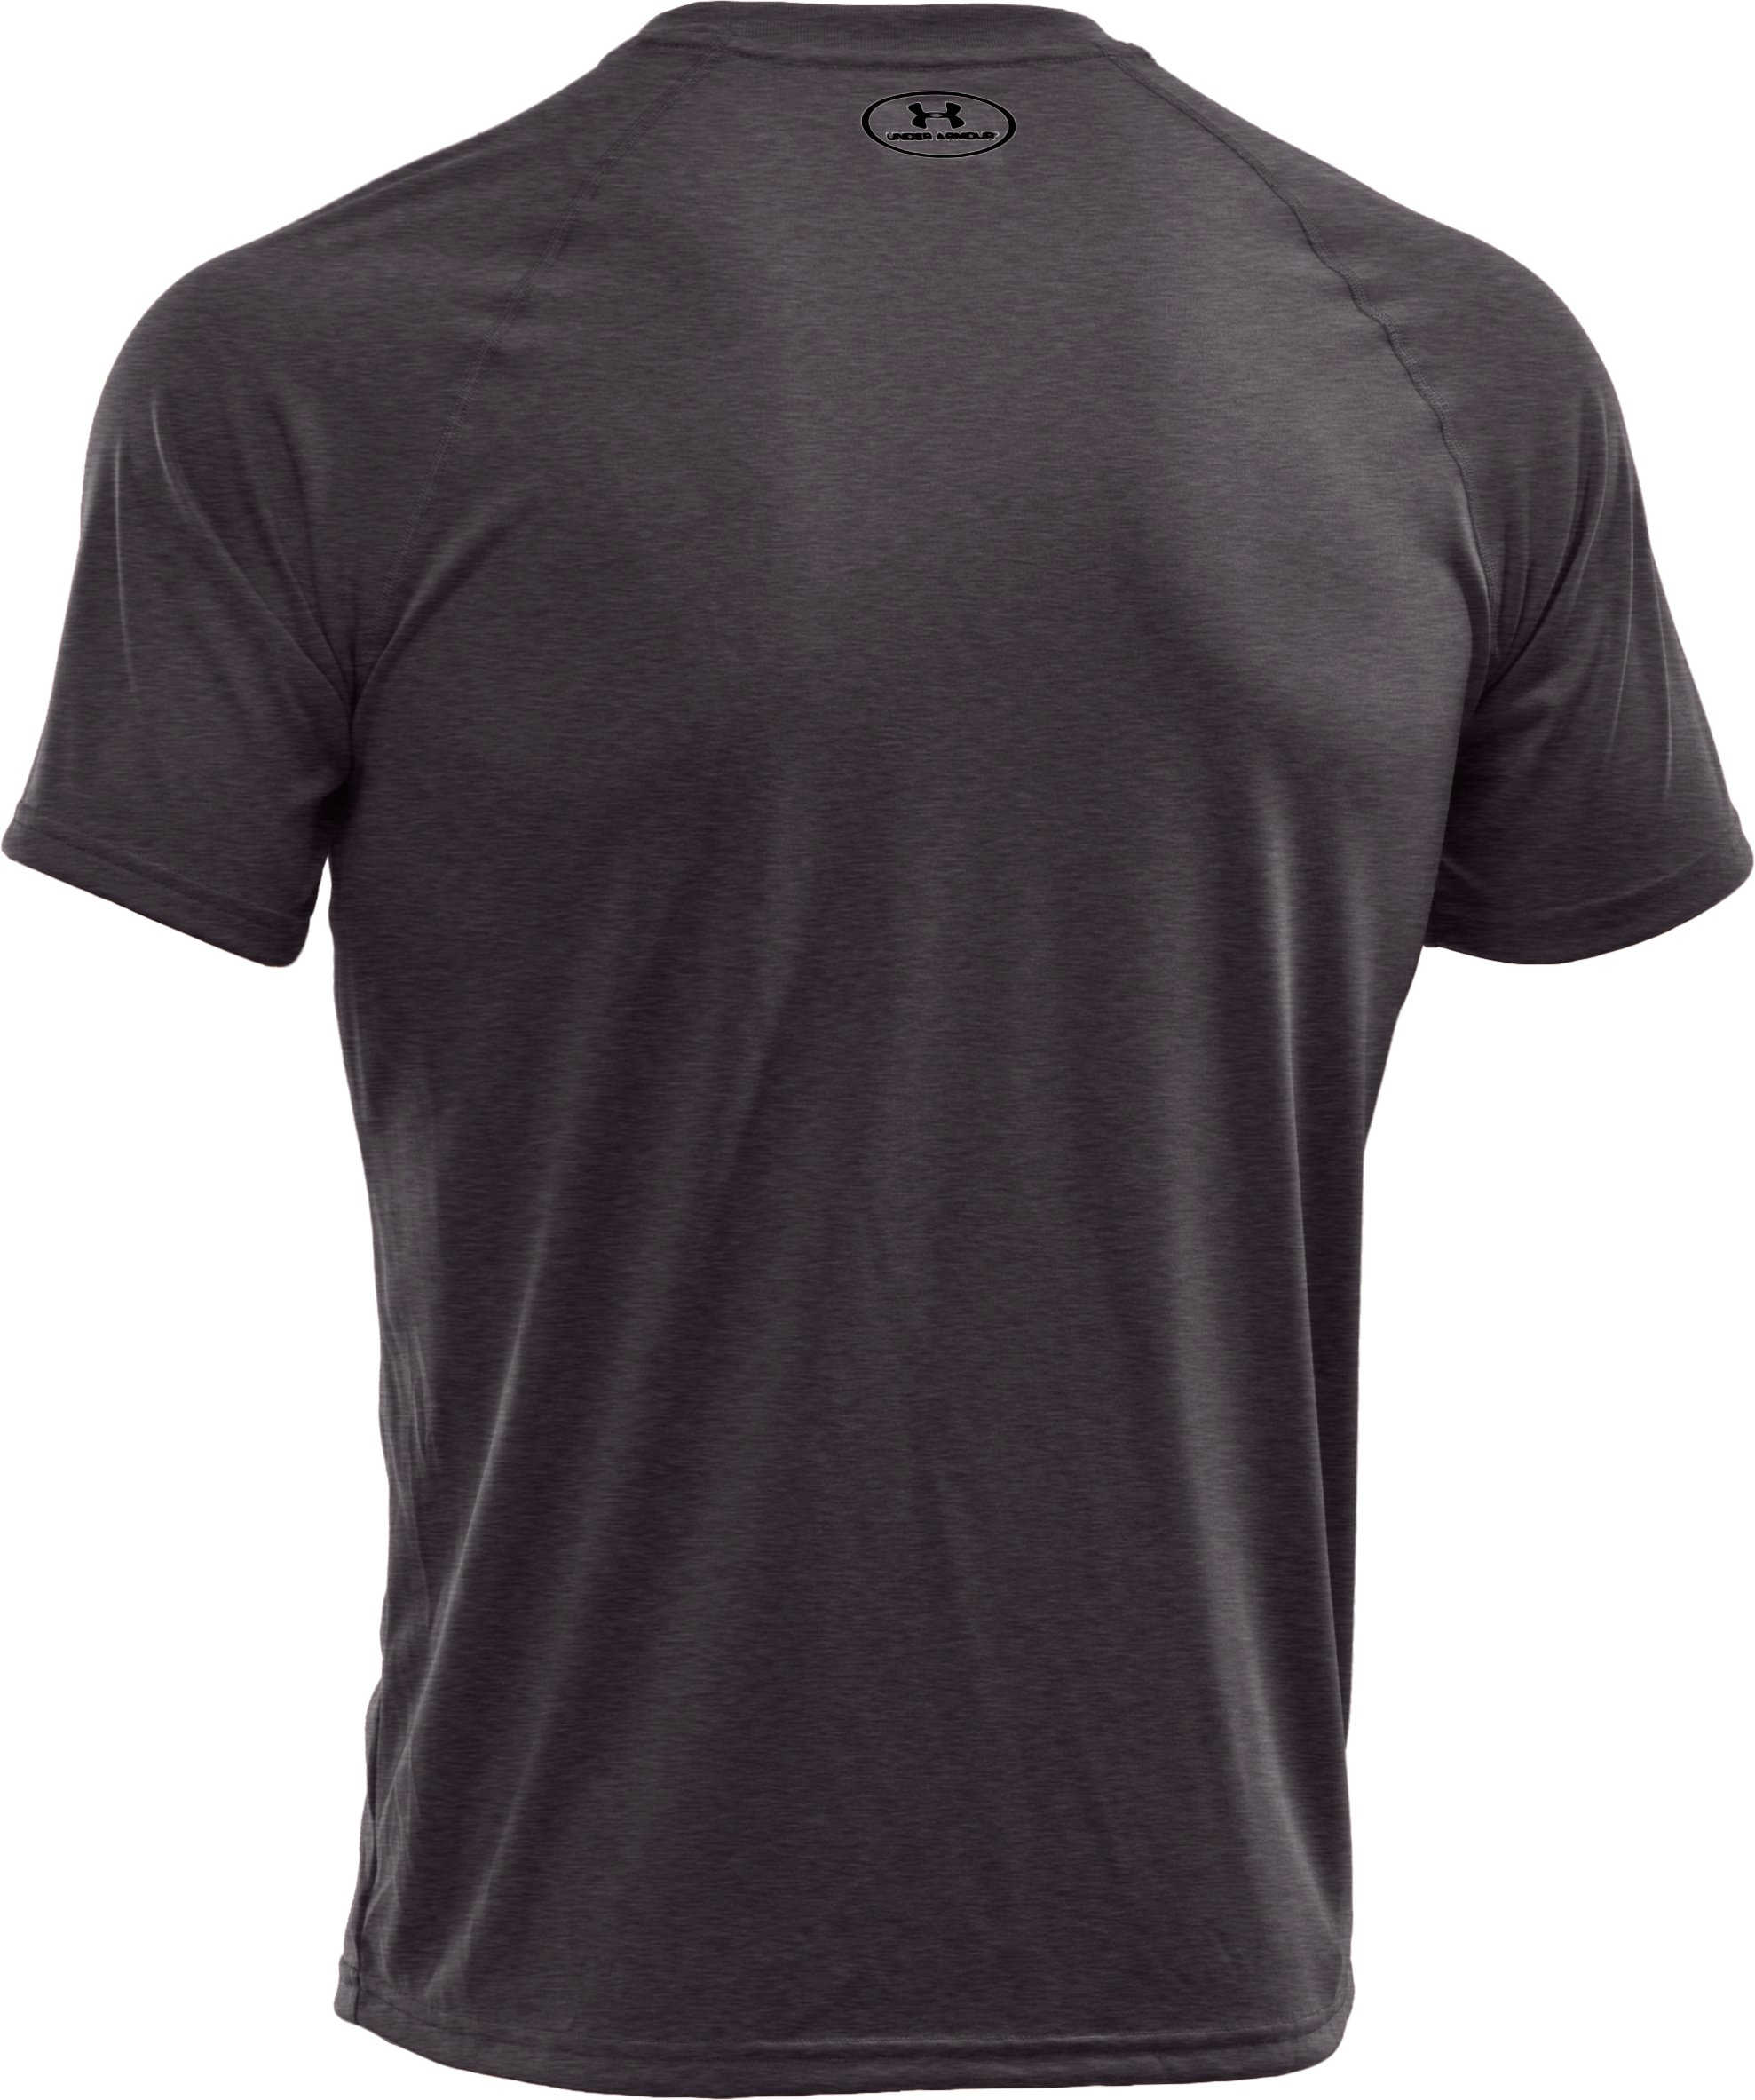 Men's UA Tech™ Short Sleeve T-Shirt, Carbon Heather